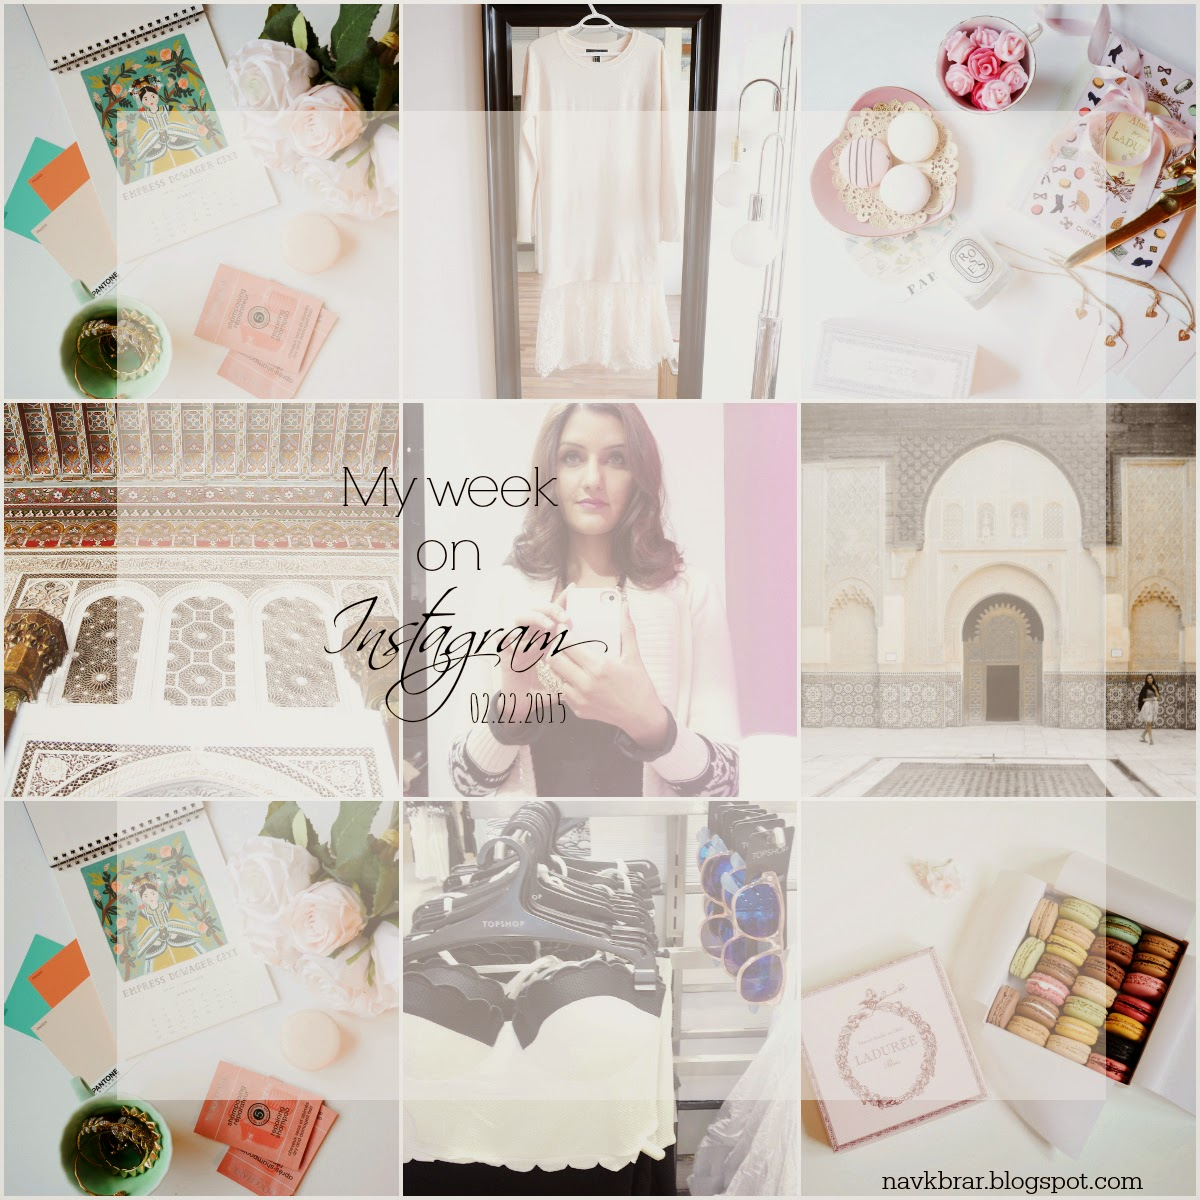 MY WEEKLY RECAP OF INSTAGRAM @NAVKBRARBLOG